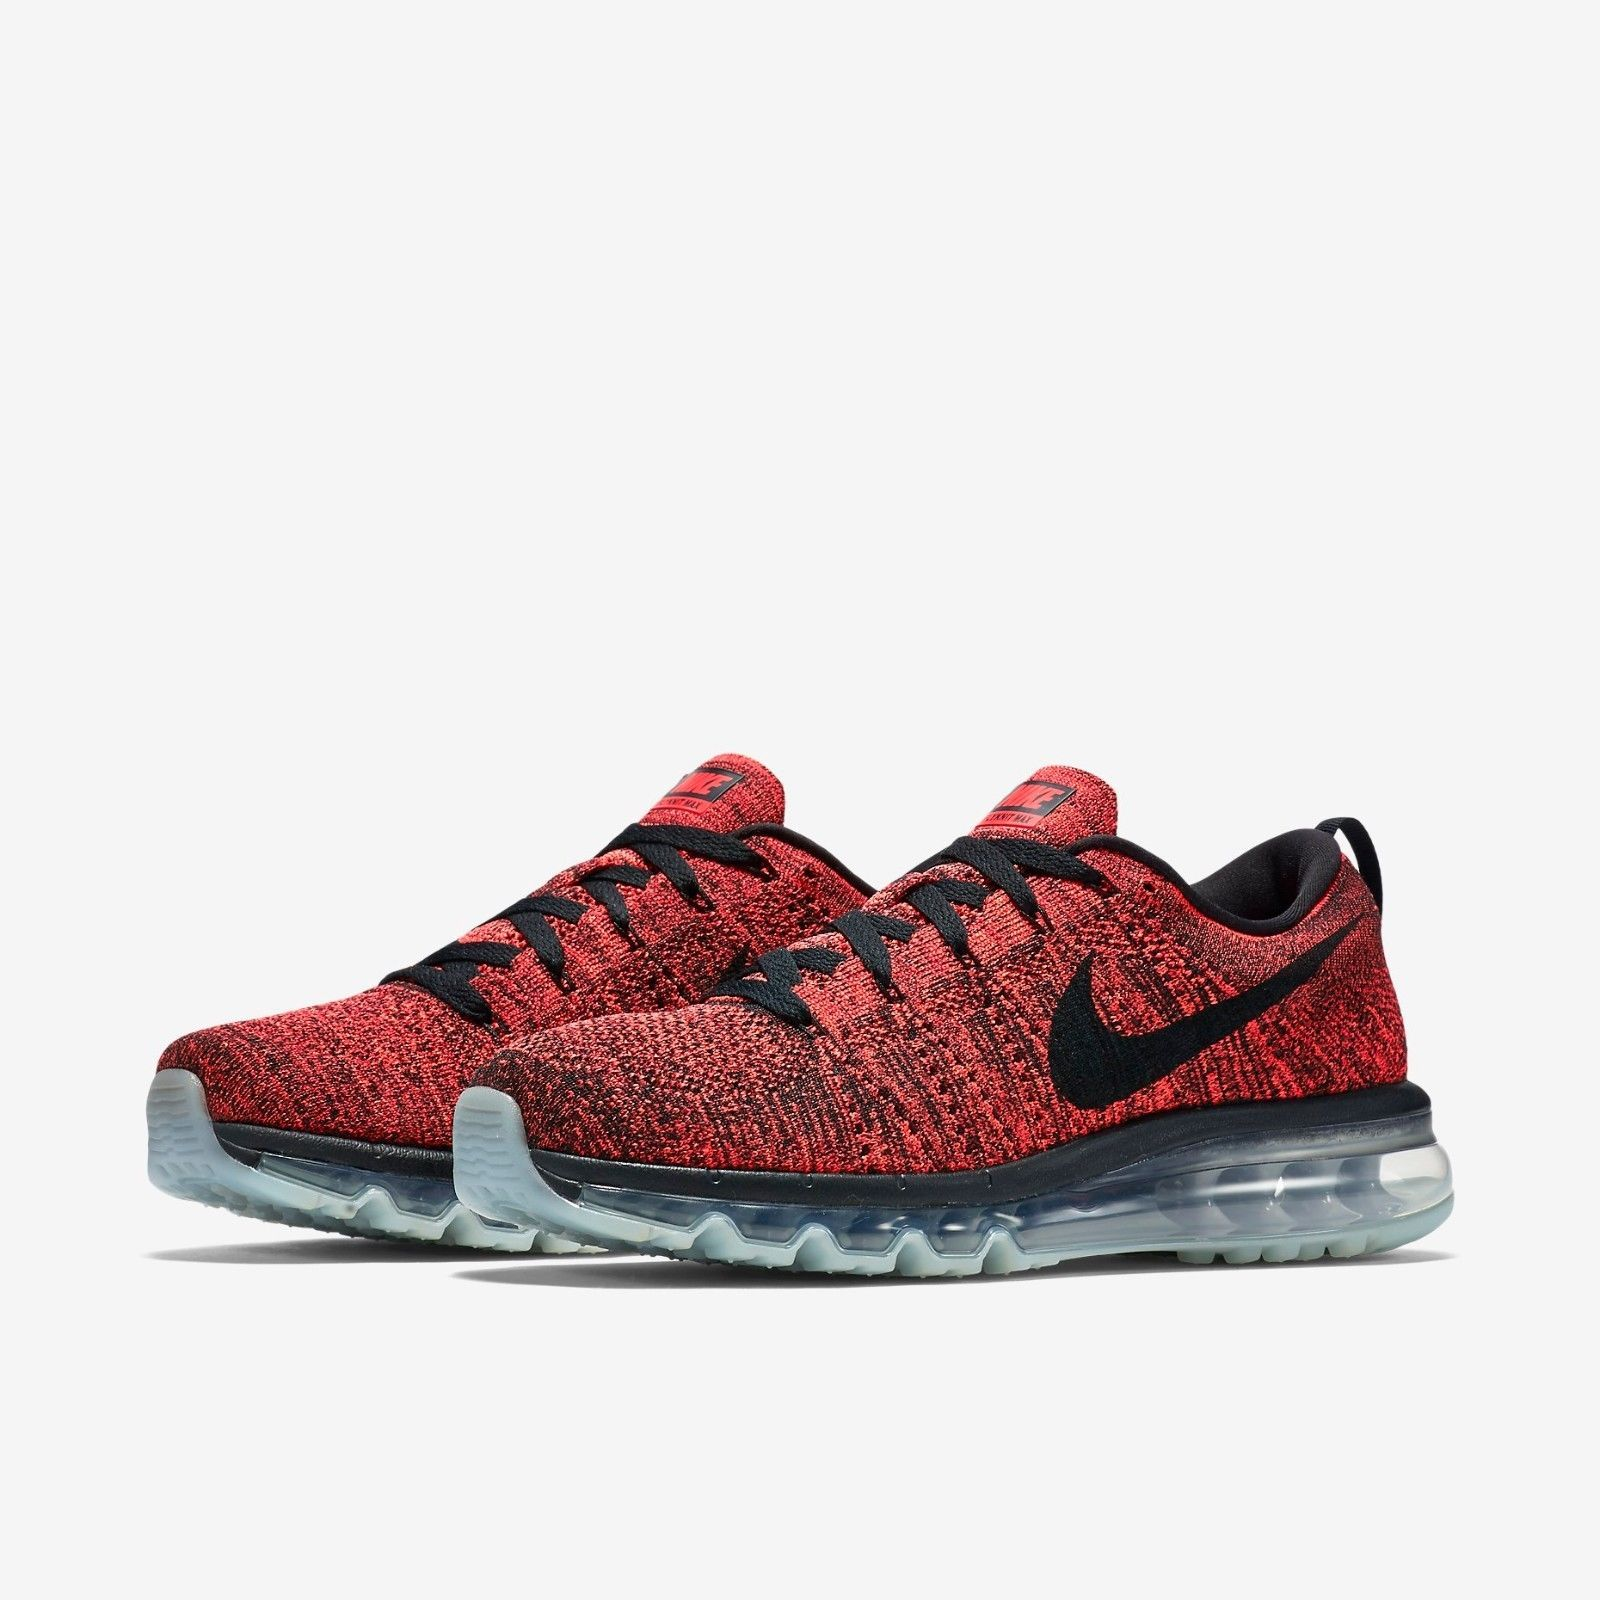 NIKE FLYKNIT AIR MAX MEN S RUNNING SHOES SIZE US 10.5 UK 9.5 EUR 44.5 620469 -006 0f8553627e00